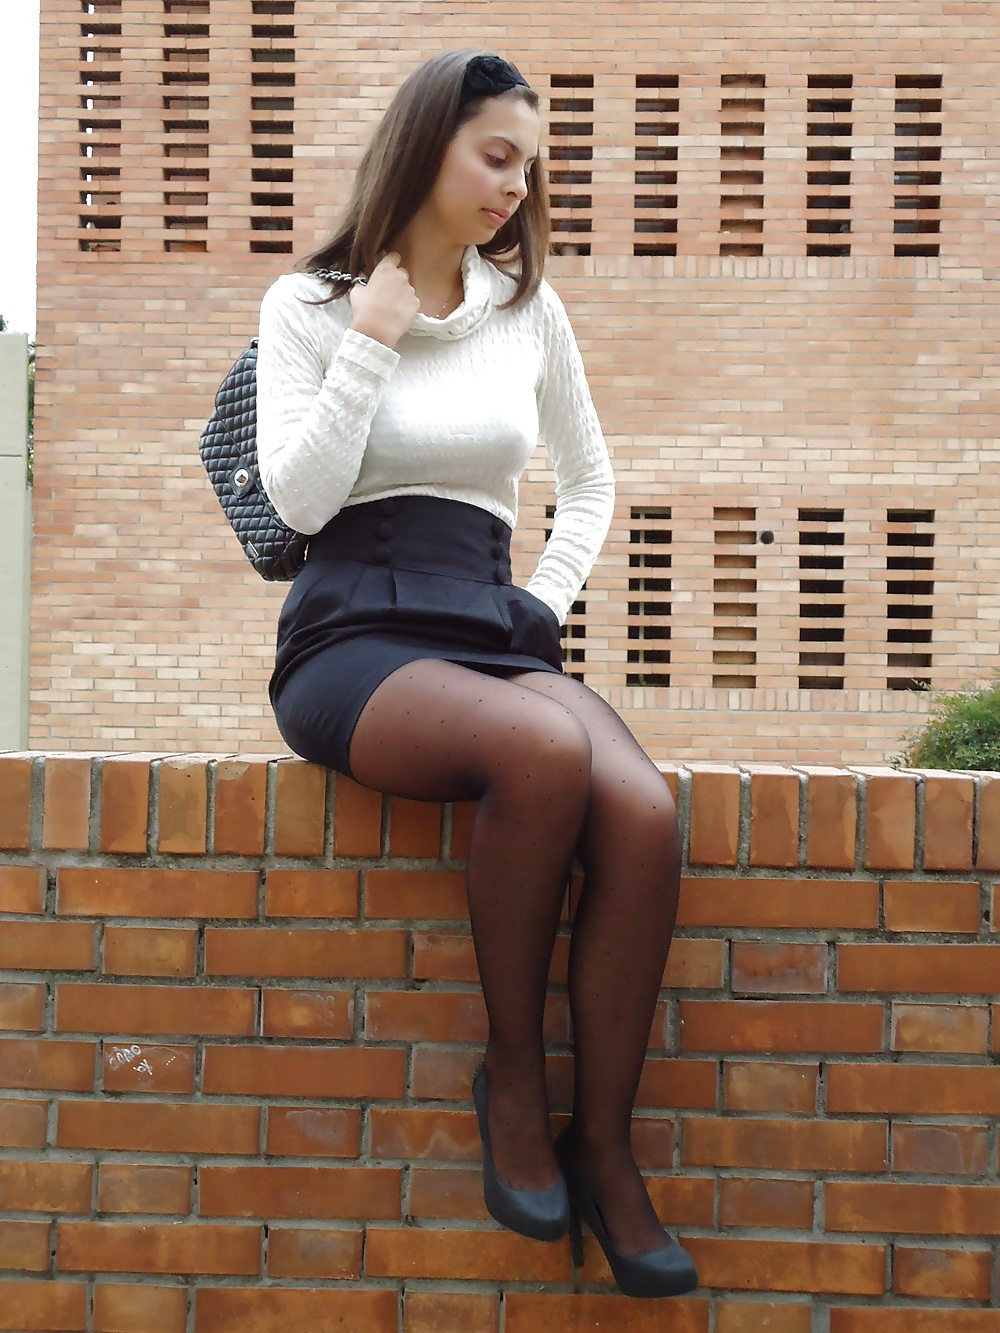 Young Teen Pictures: Teen Nylon Black Stockings